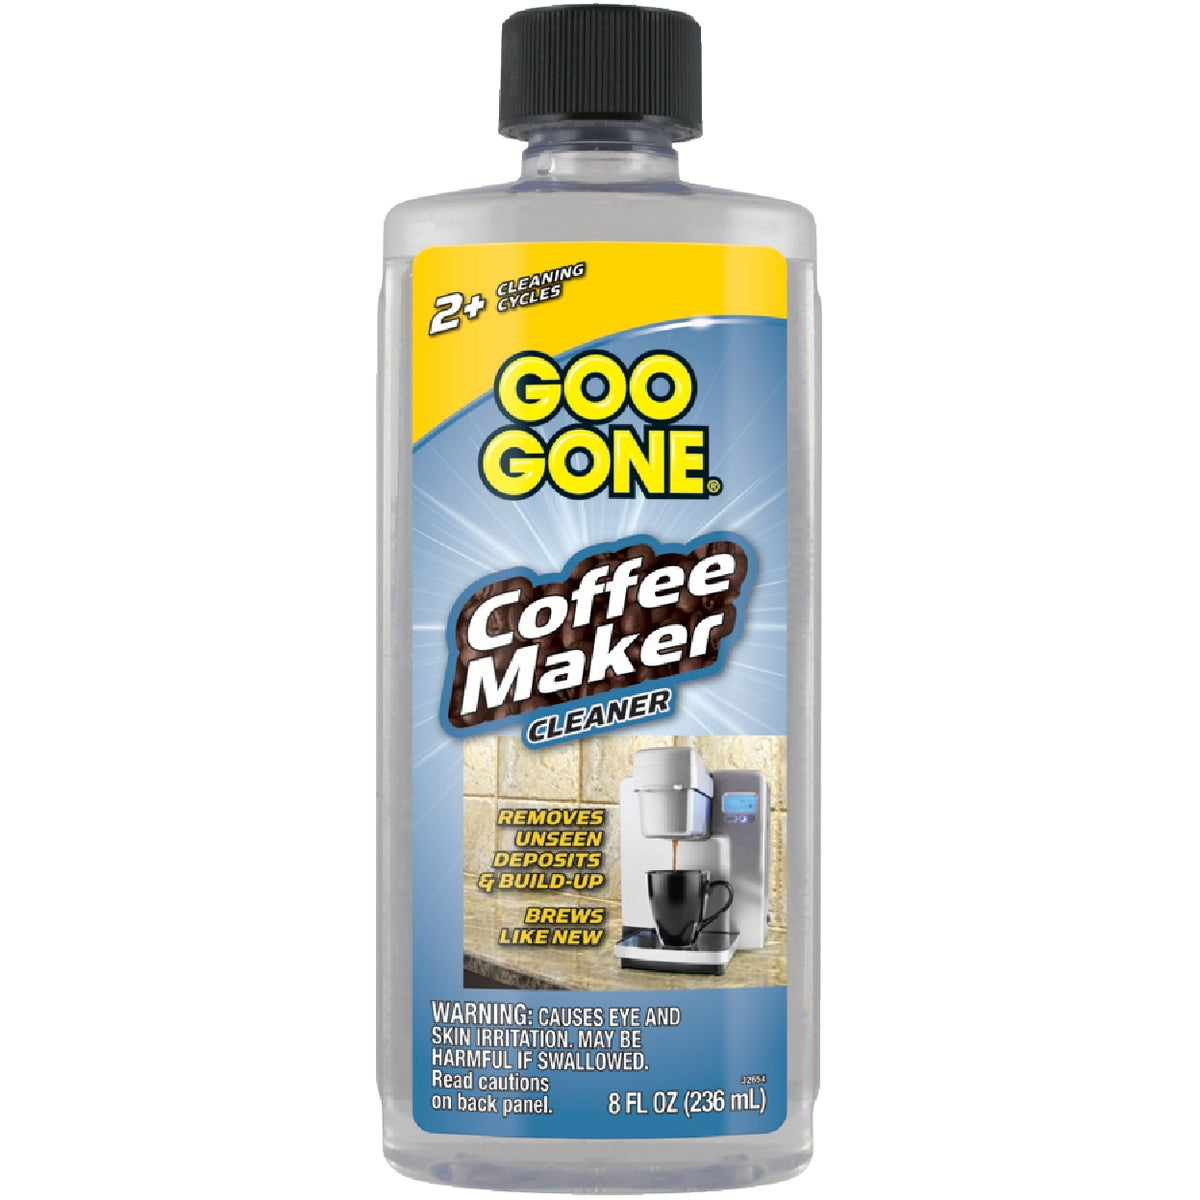 8OZ COFFEE MAKER CLEANER